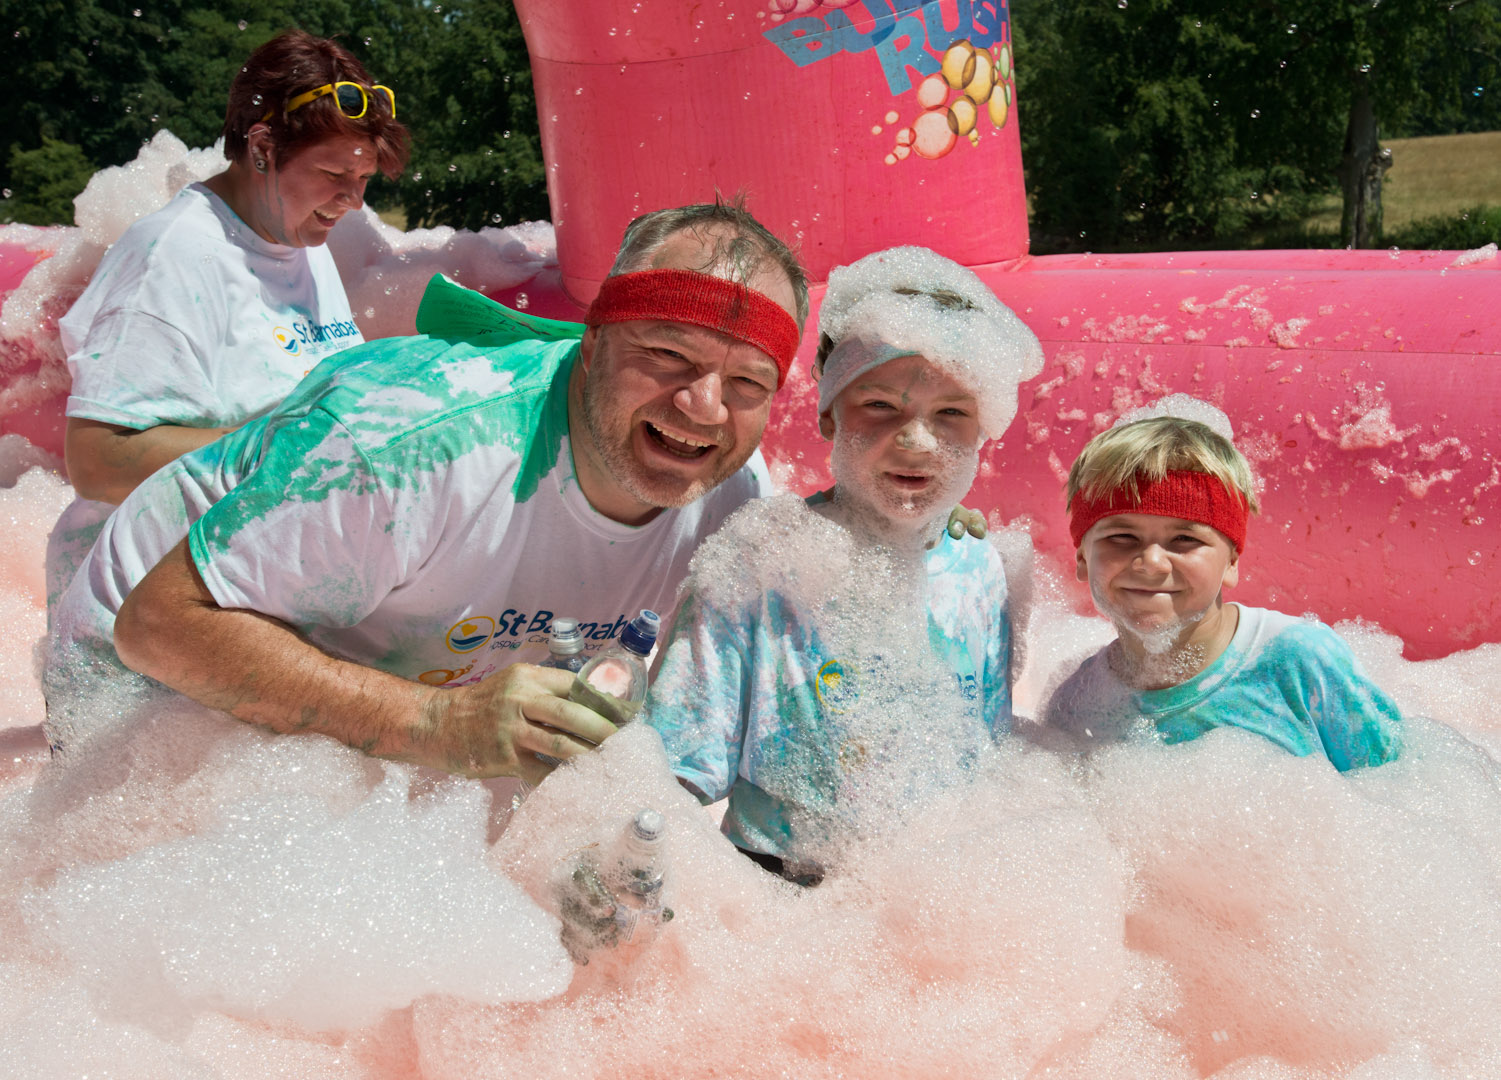 Almost £25,000 has been raised at the successful Bubble Rush